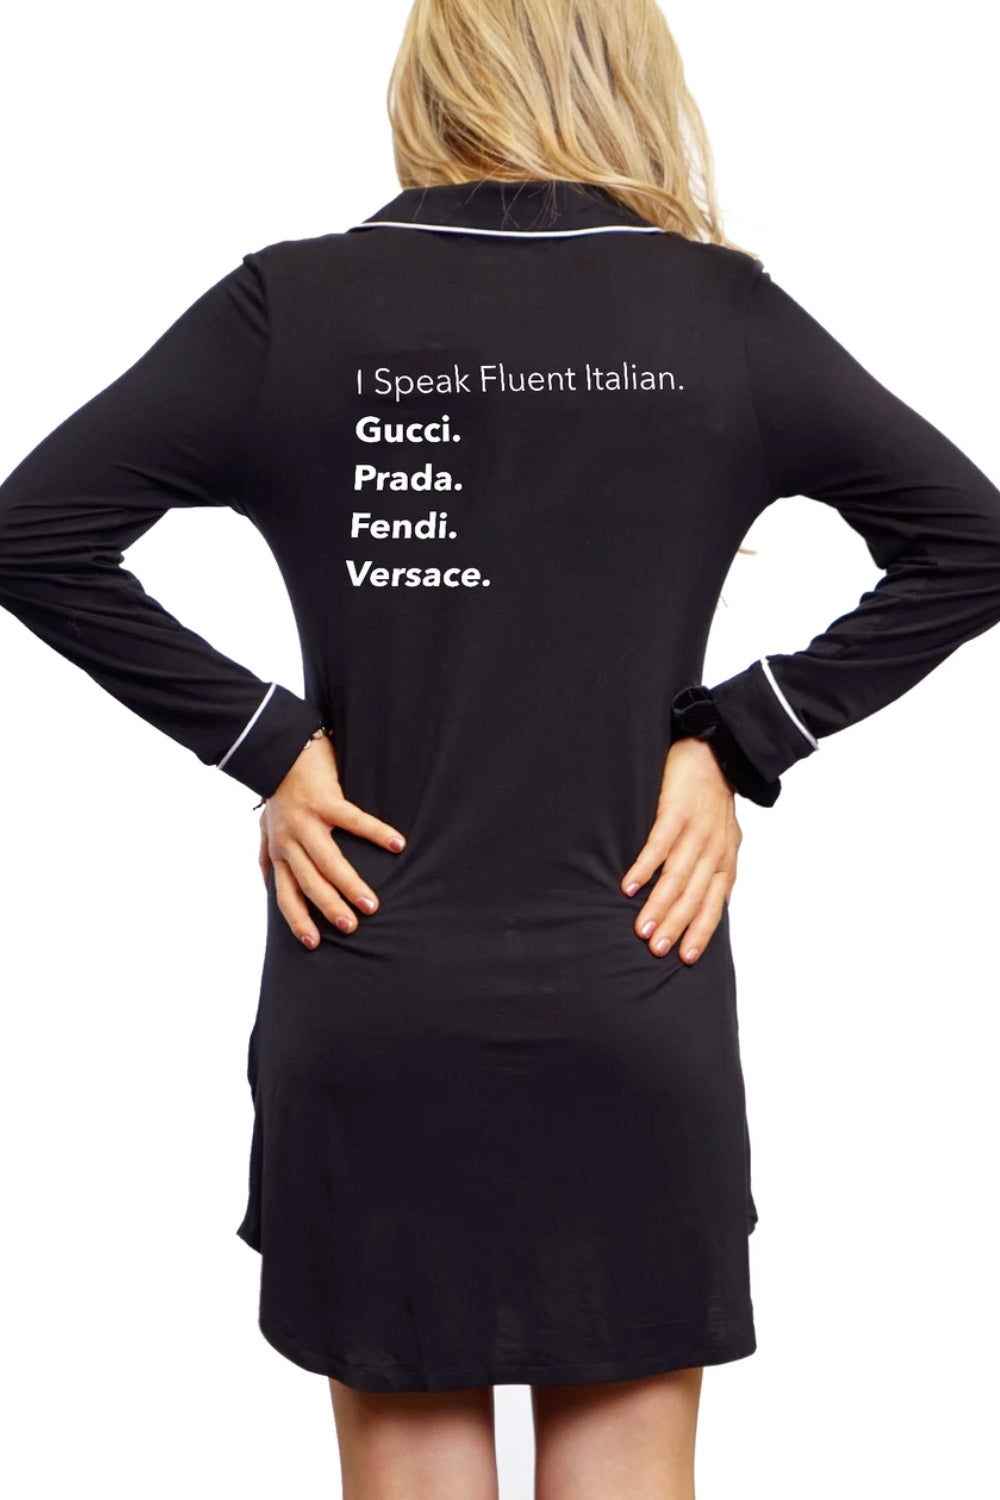 night-shirt-fluent-in-italian